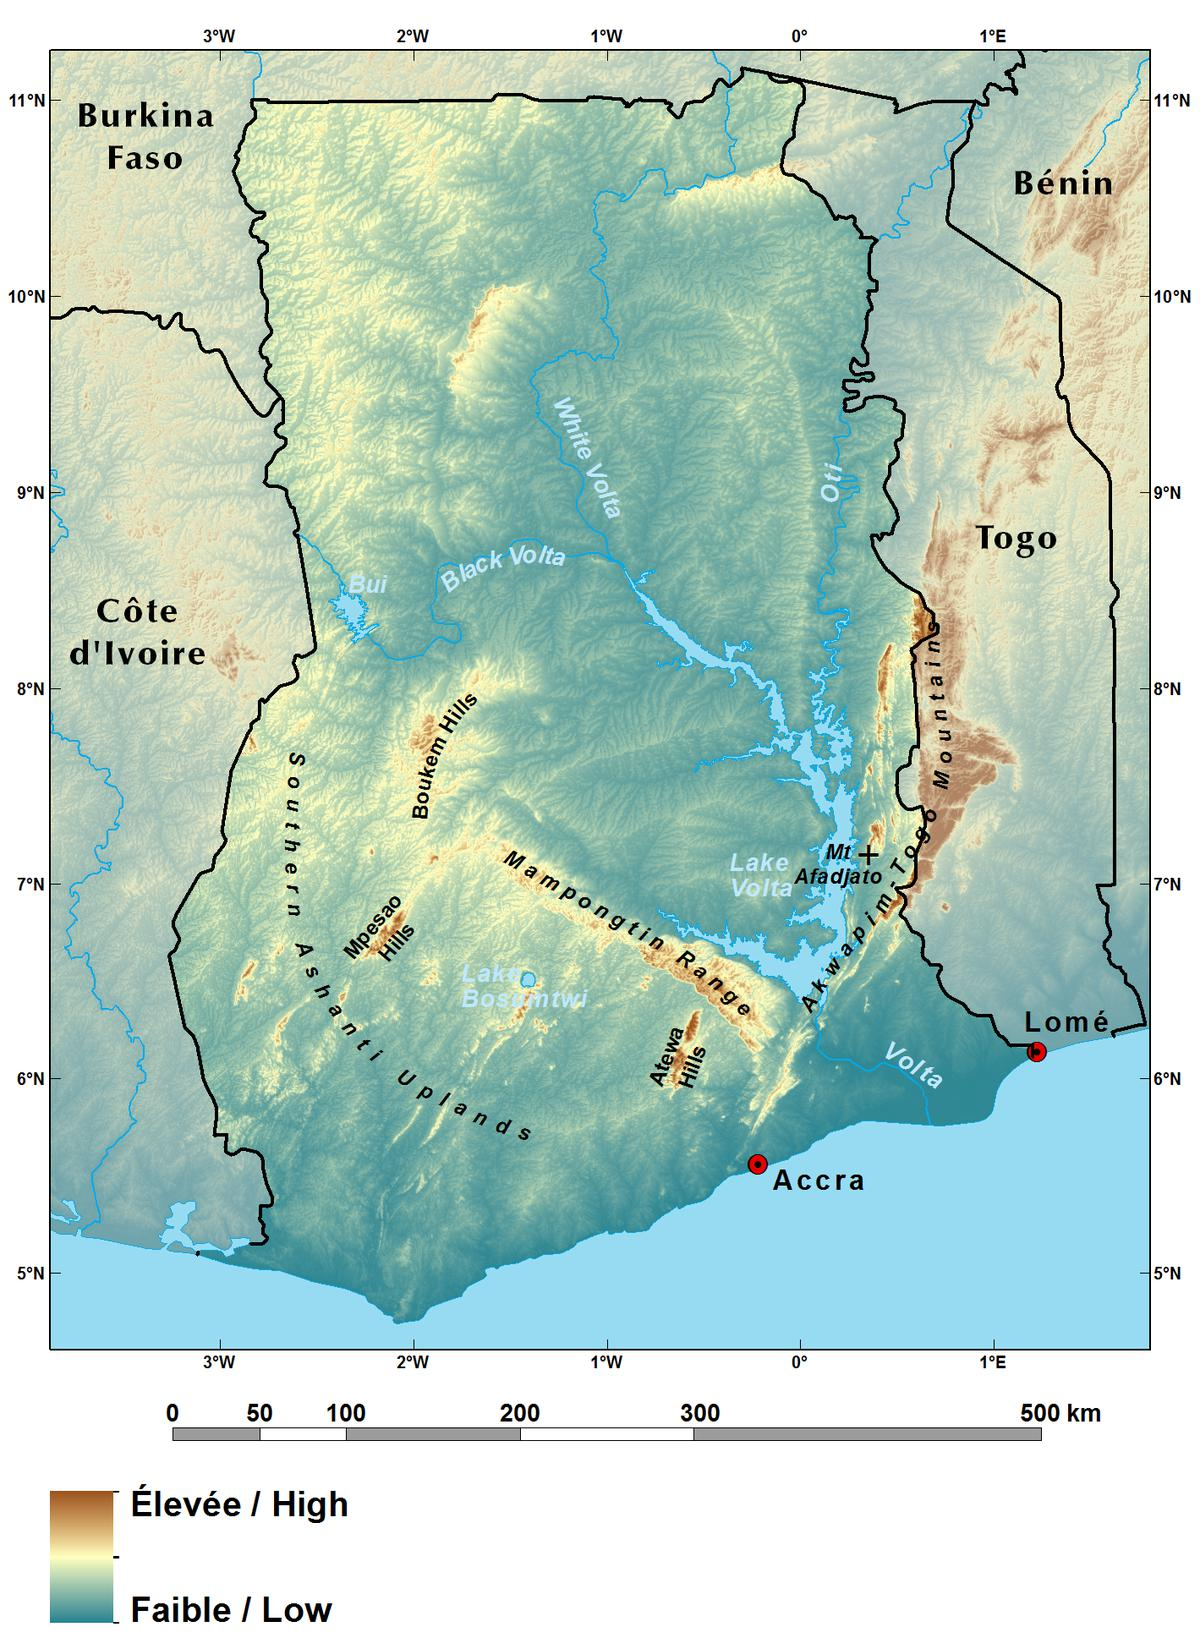 Ecoregions and Topography of Ghana West Africa